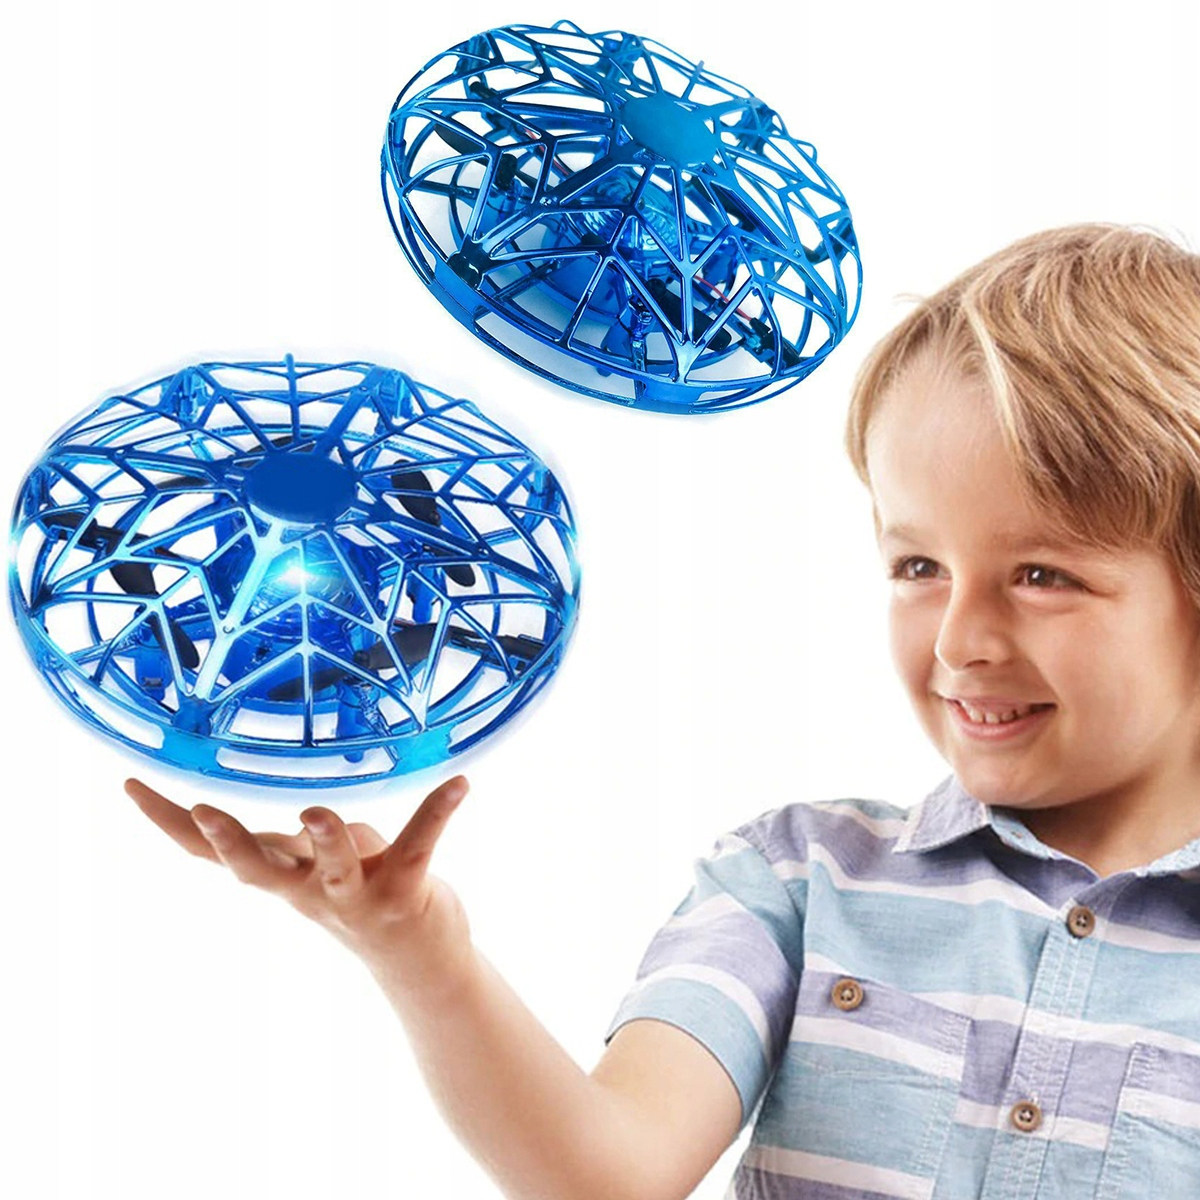 Item THE DRONE IS CONTROLLED BY HAND, 360 UFO FLYING TOY 1